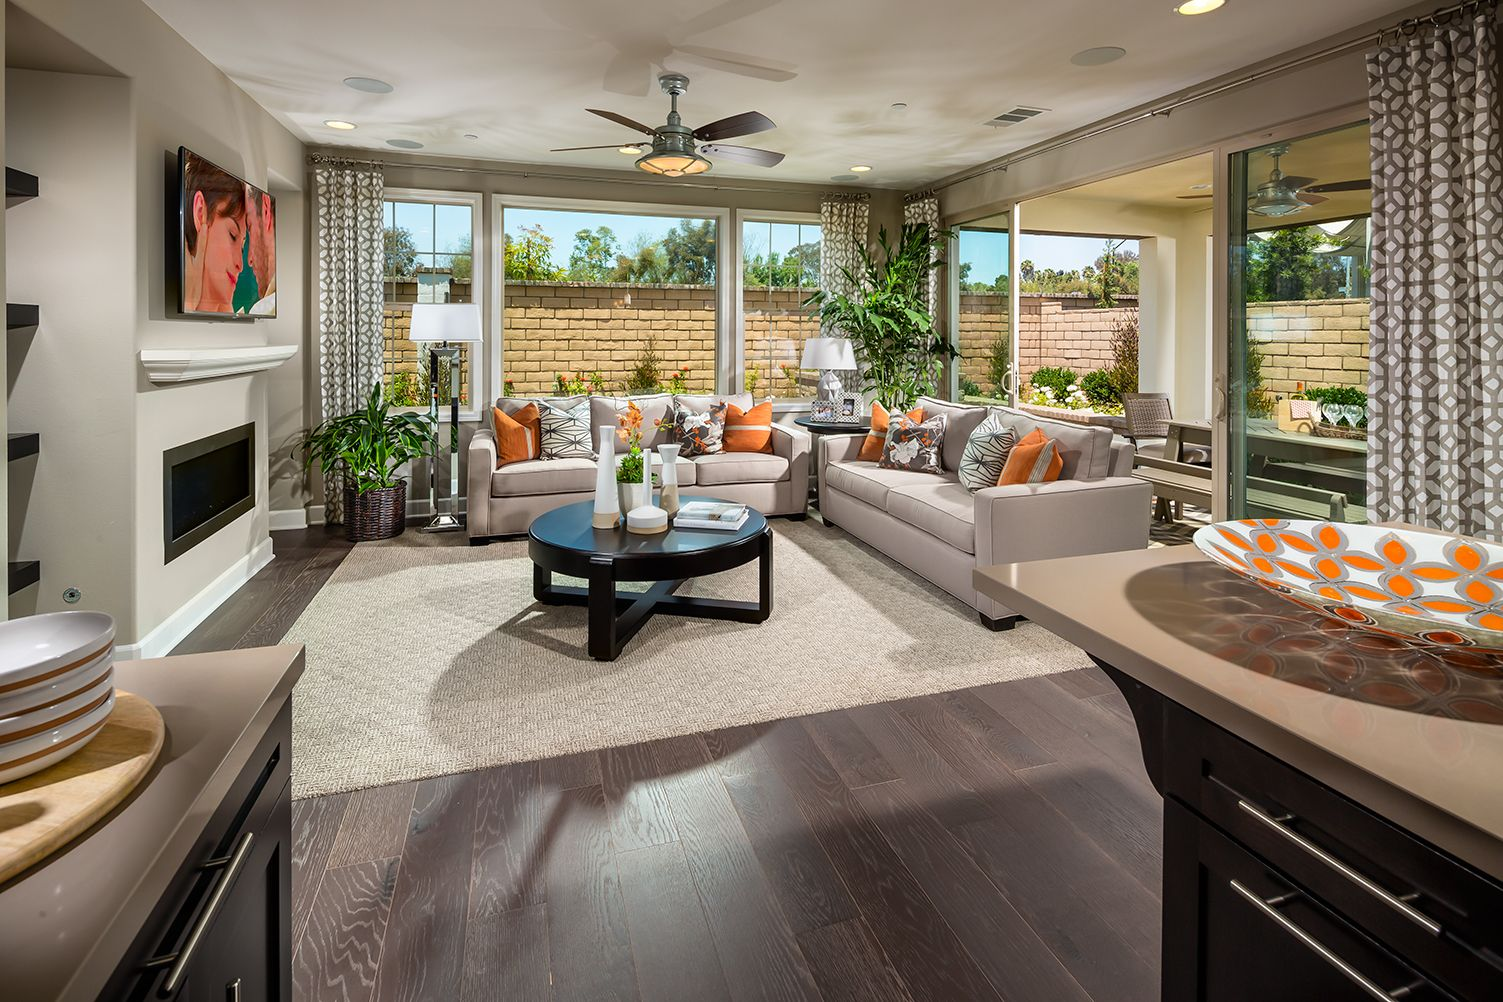 indoor outdoor living in style at casabella luxury new homes